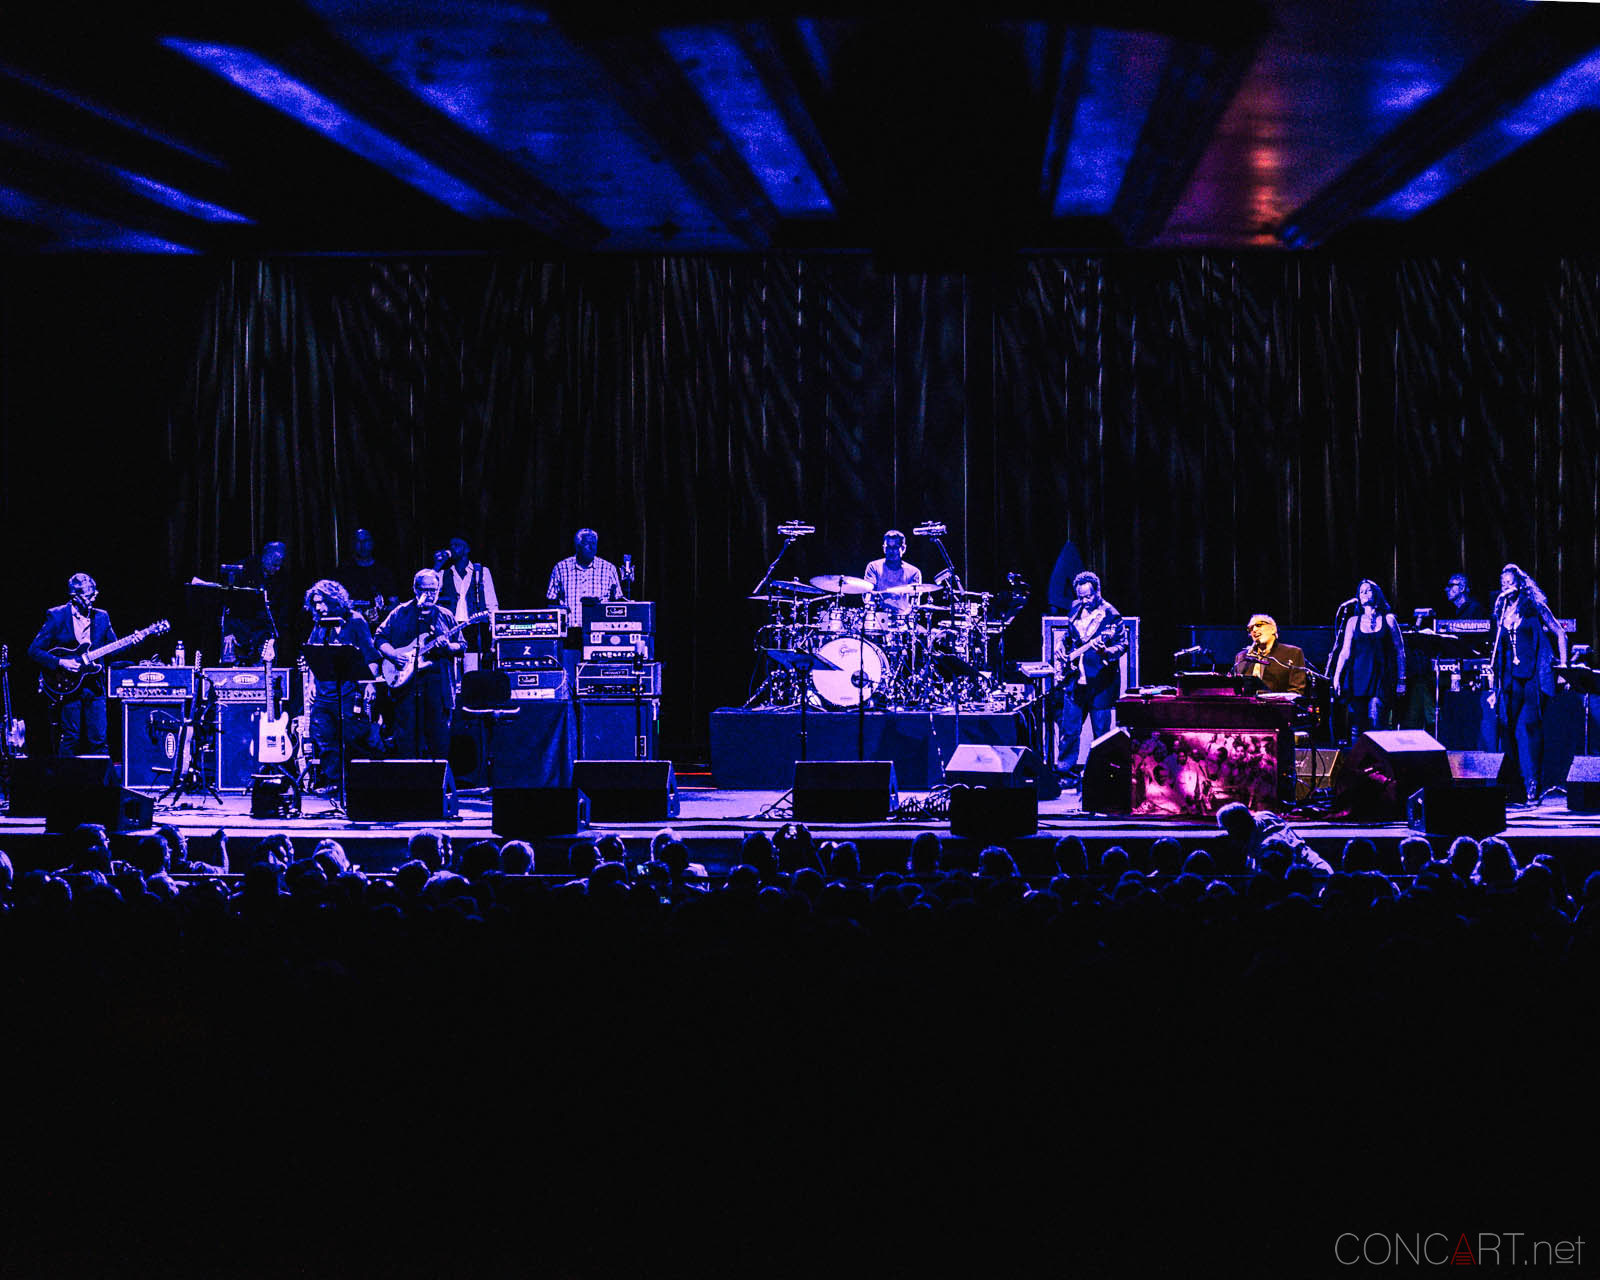 steely_dan_live_old_national_murat_theatre_indianapolis_2013-36